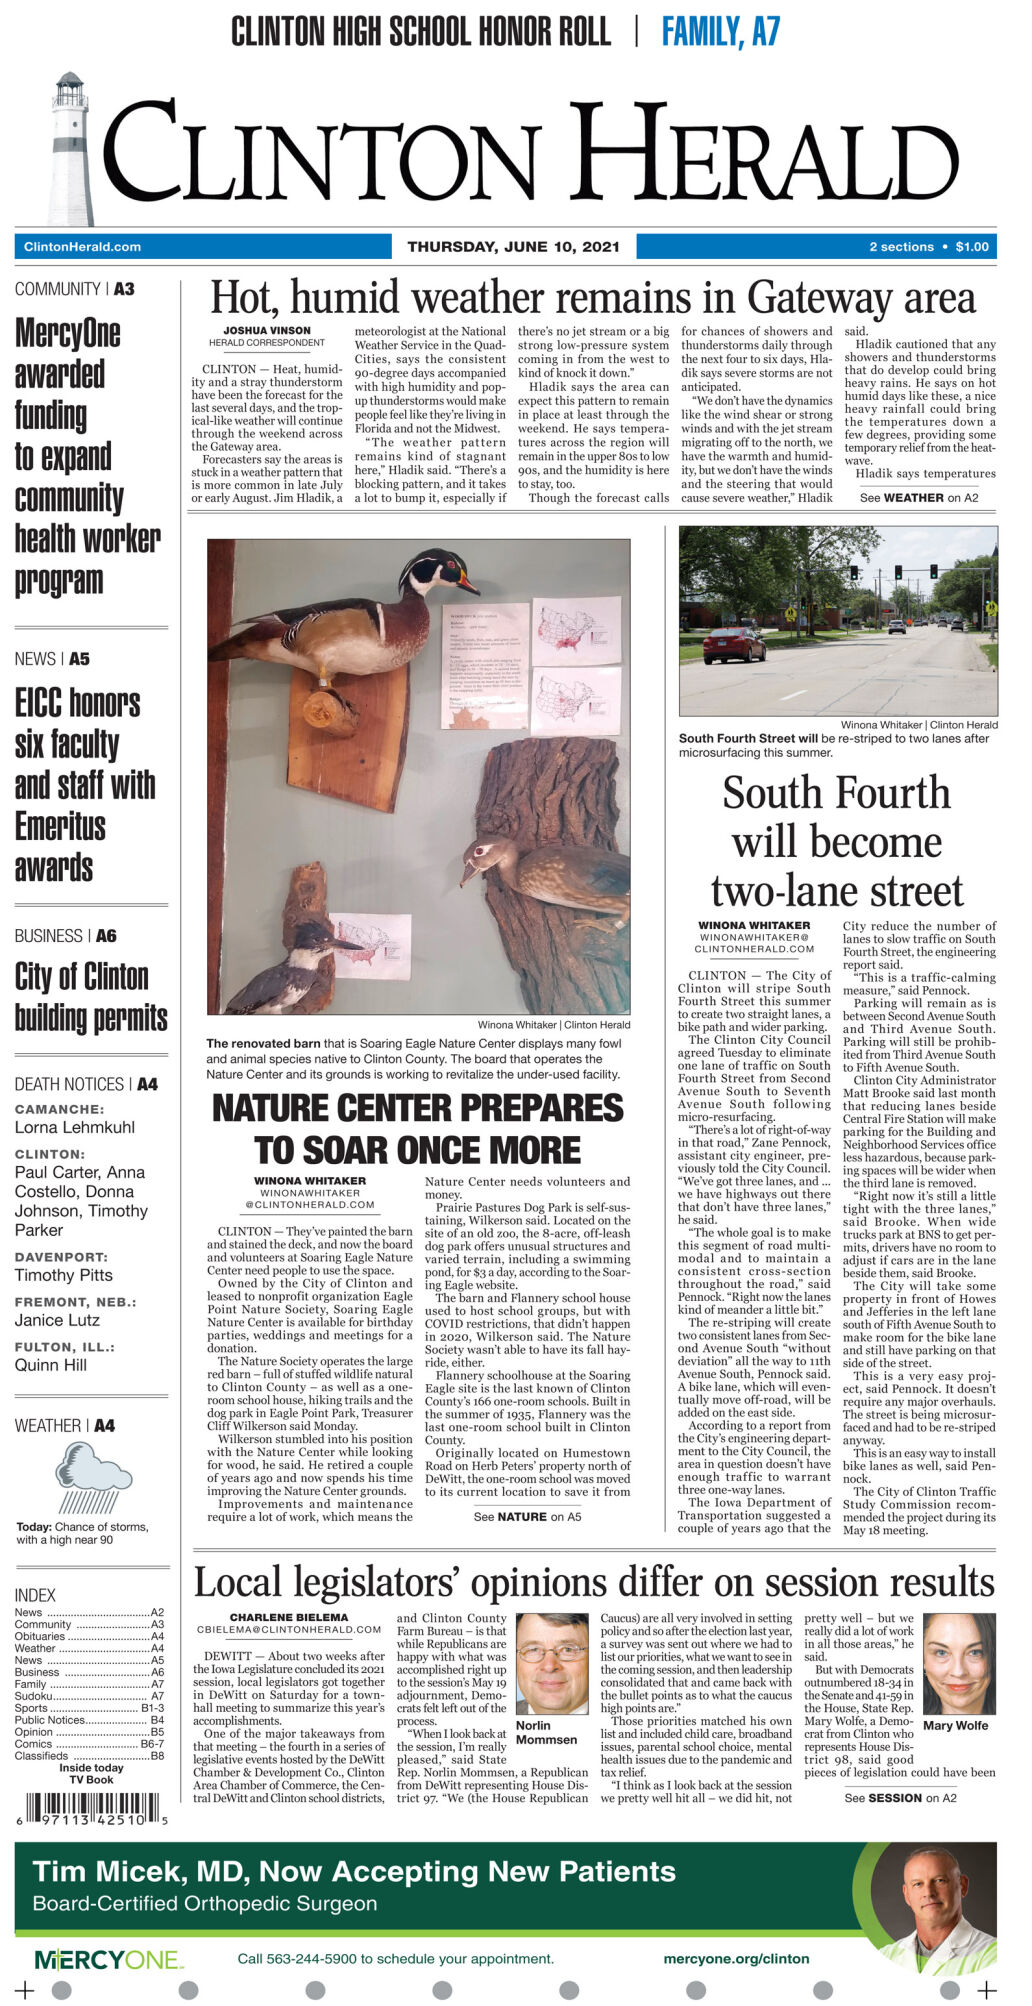 June 10, 2021 Front page